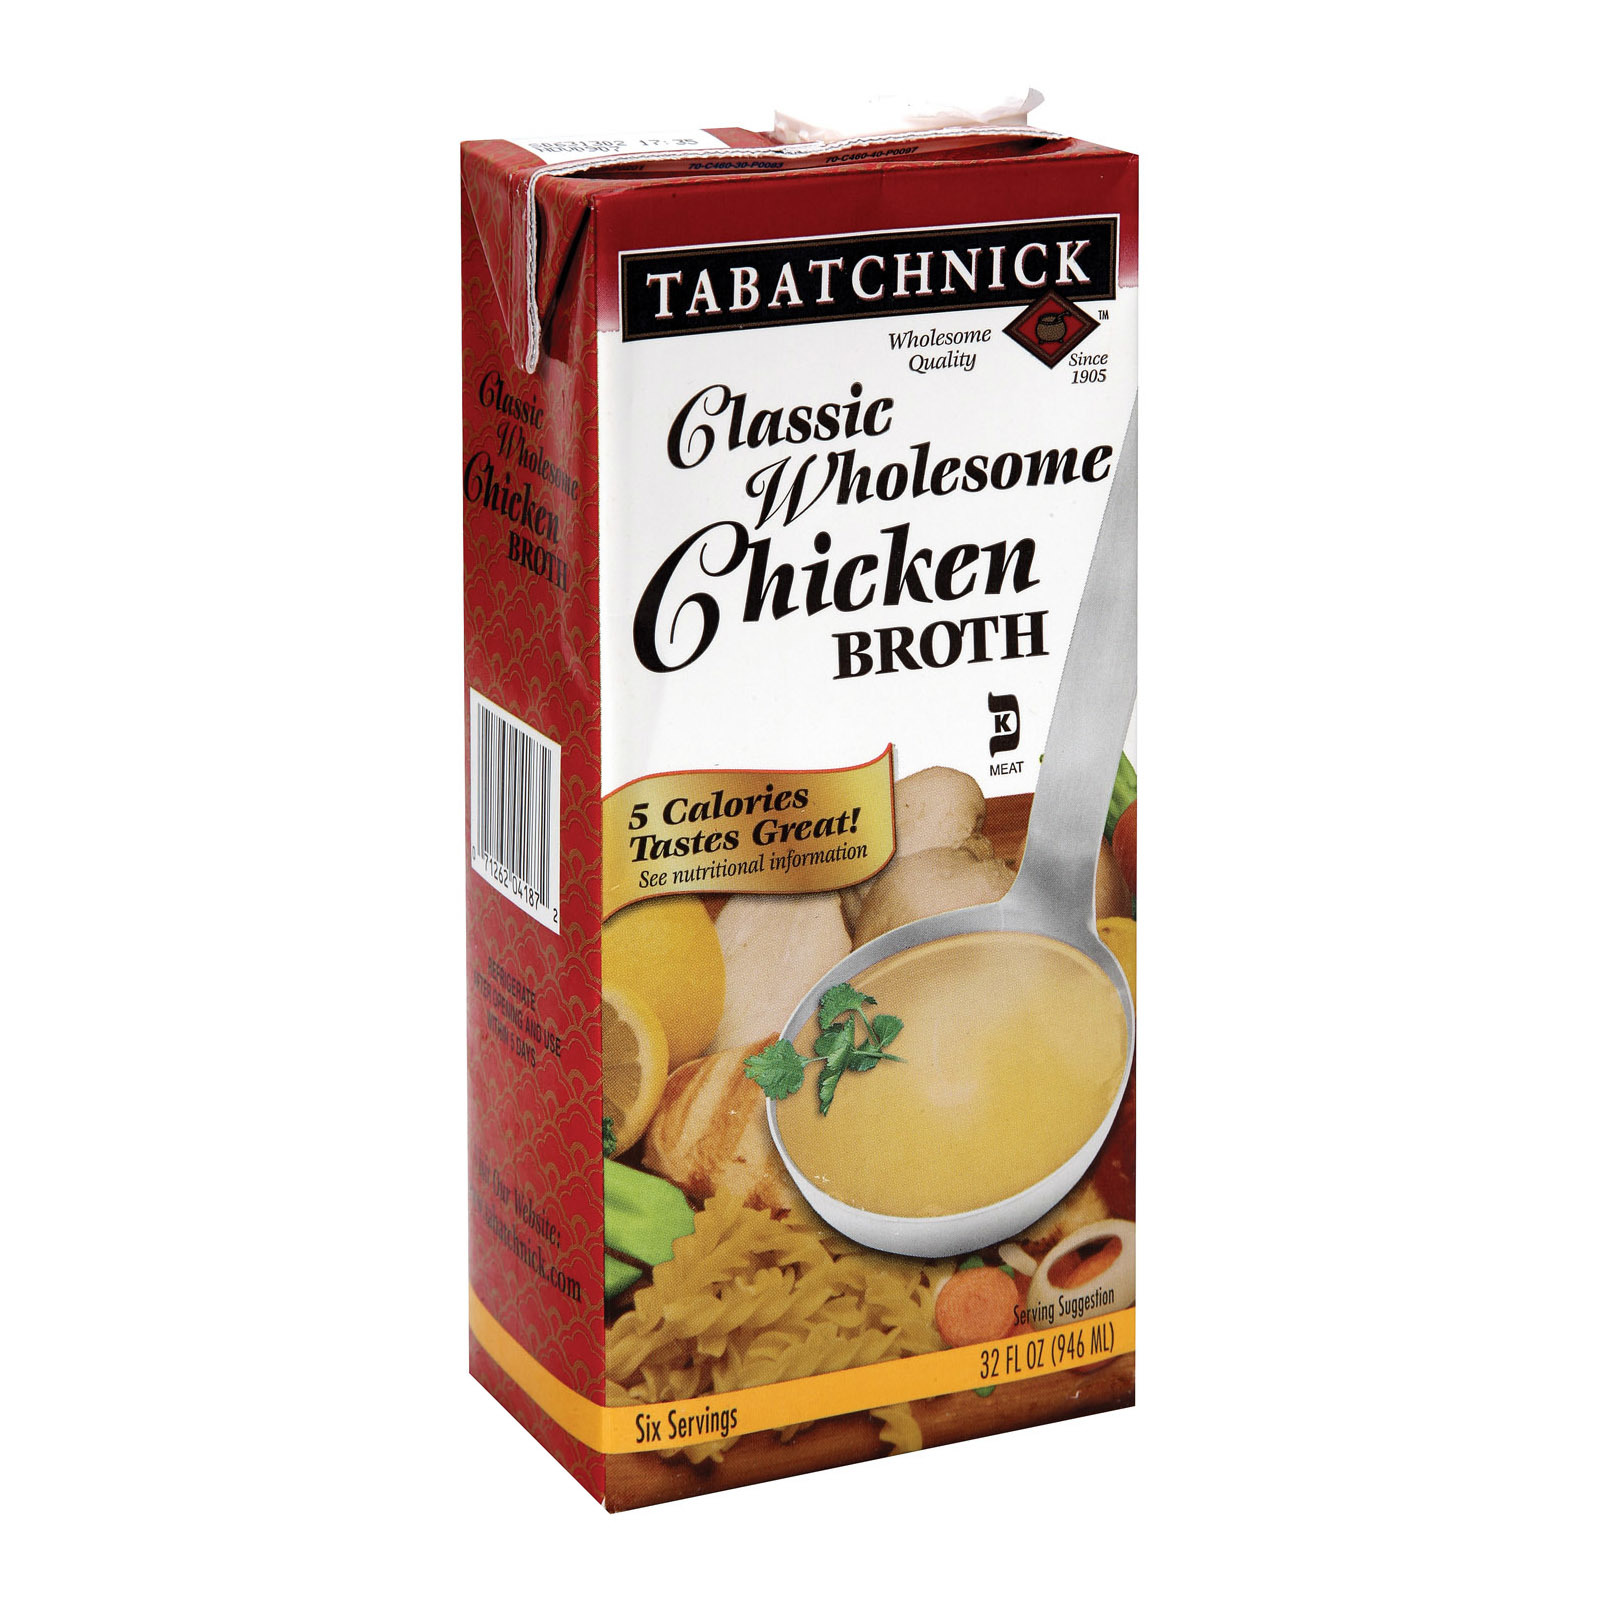 Tabatchnick Classic Wholesome Chicken Broth - Case of 12 - 32 Fl oz.